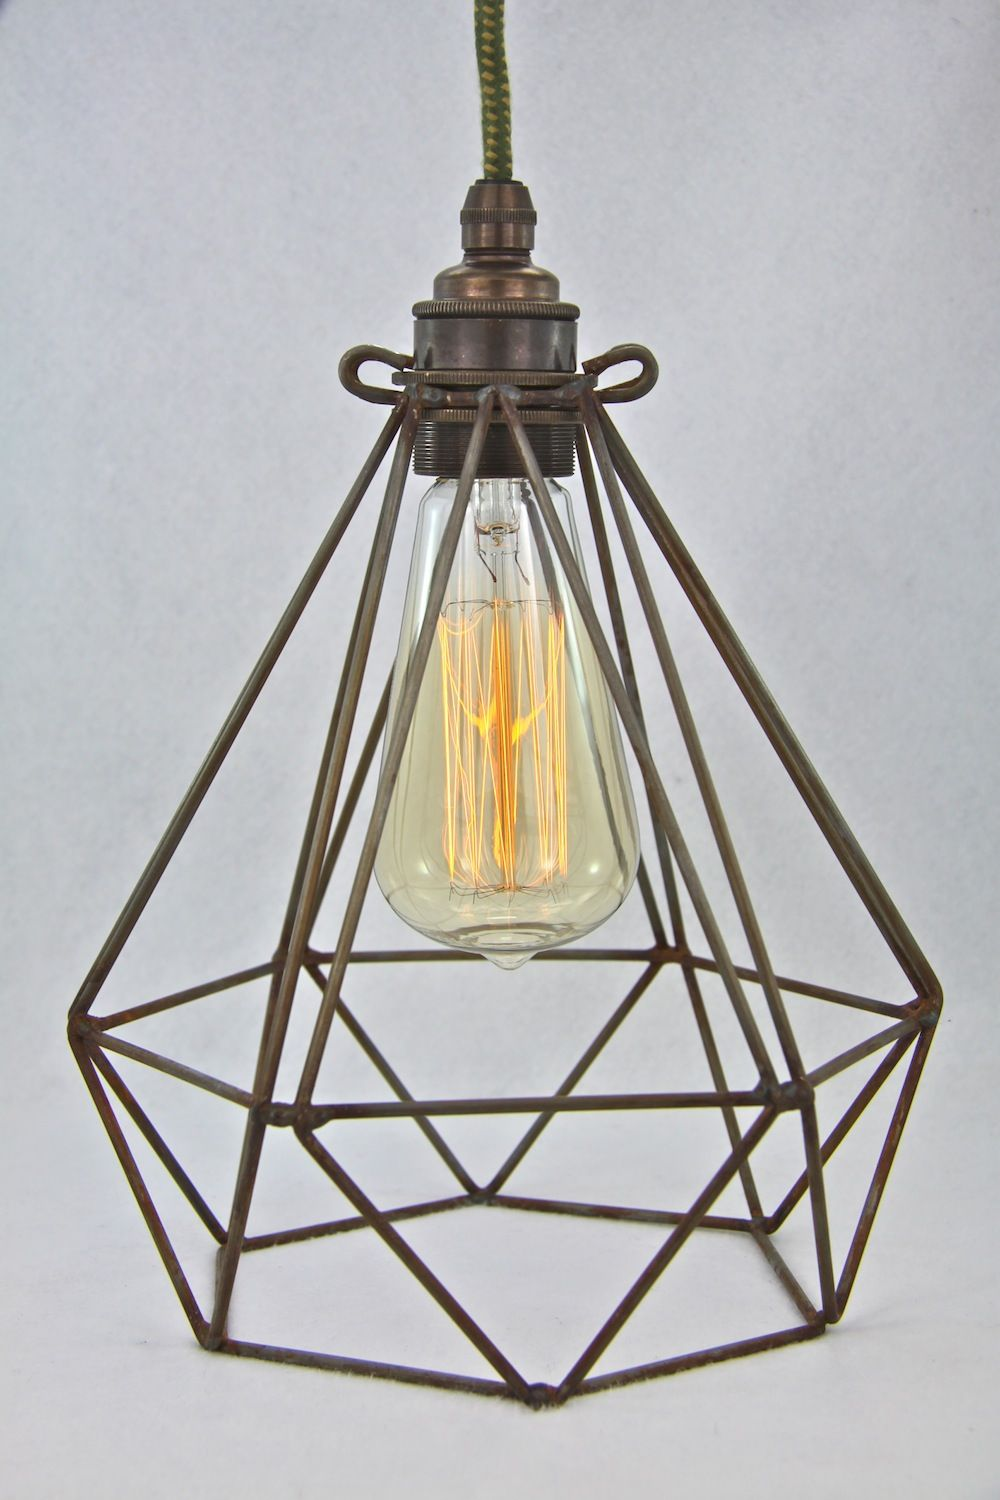 Diamond wire lamp Cage Vintage Industrial pendant cloth cord trouble ...